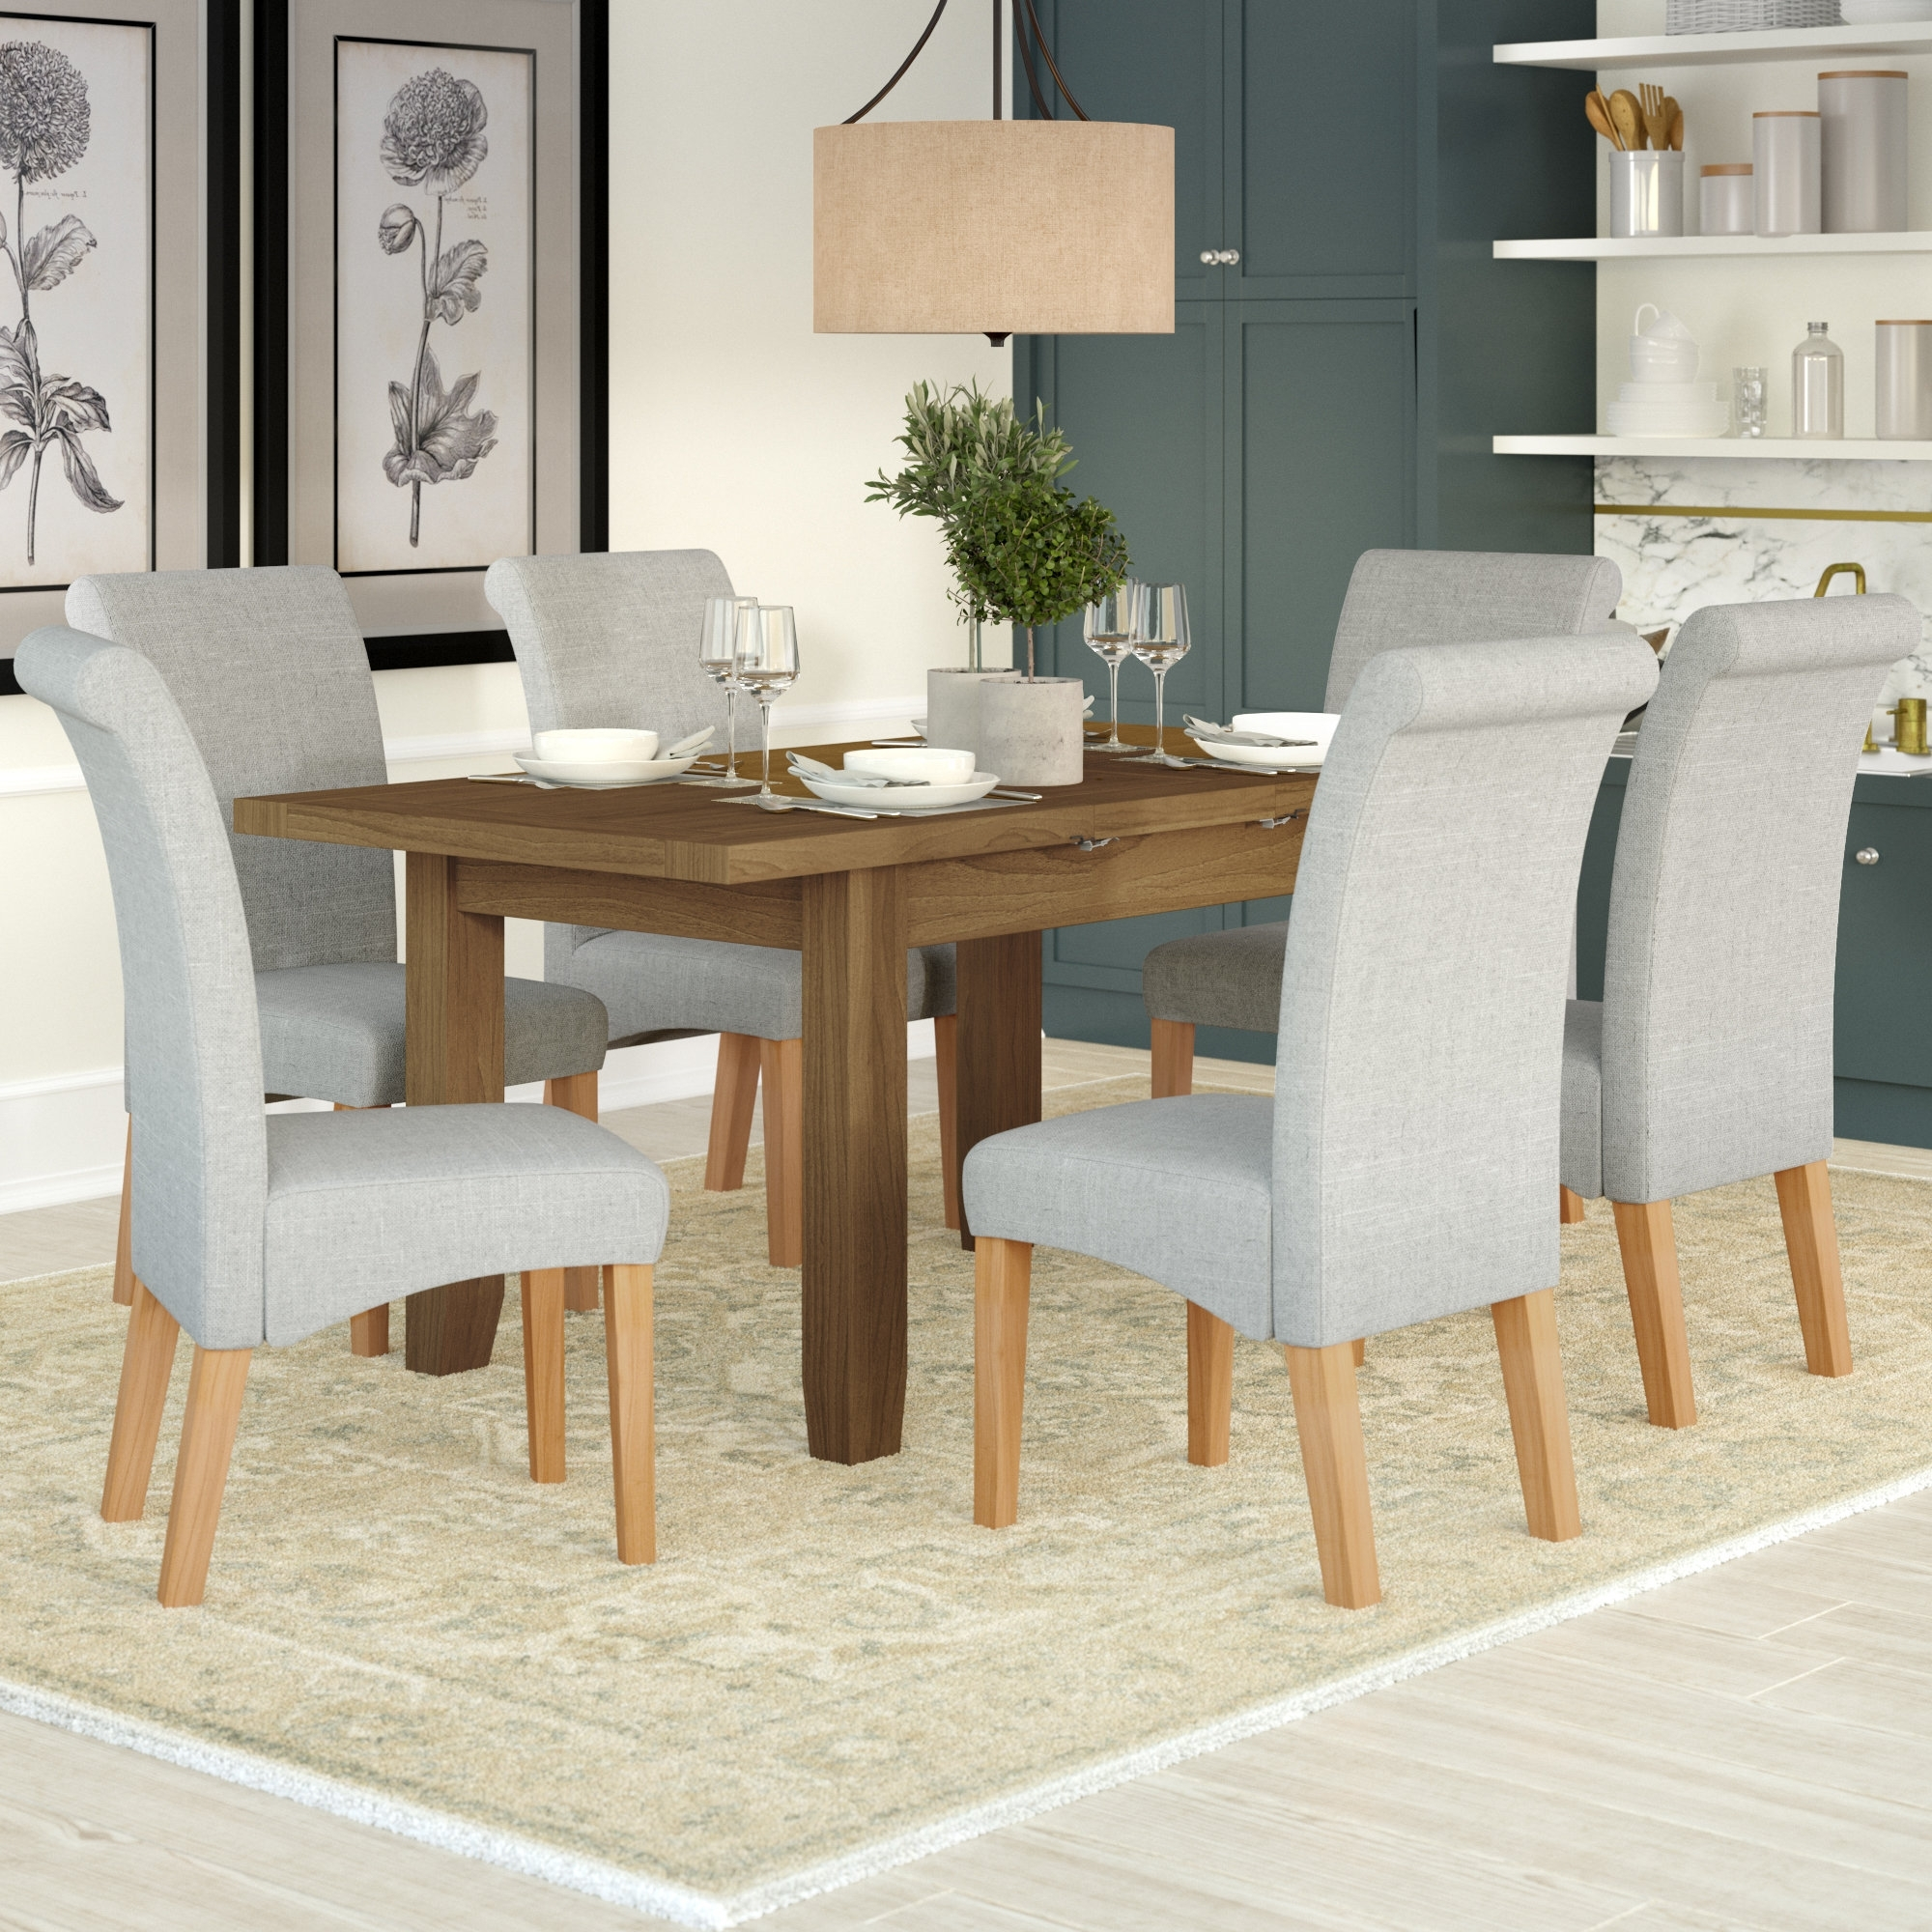 Well Liked Three Posts Berwick Extendable Dining Table And 6 Chairs & Reviews With Regard To Wooden Dining Tables And 6 Chairs (View 17 of 25)